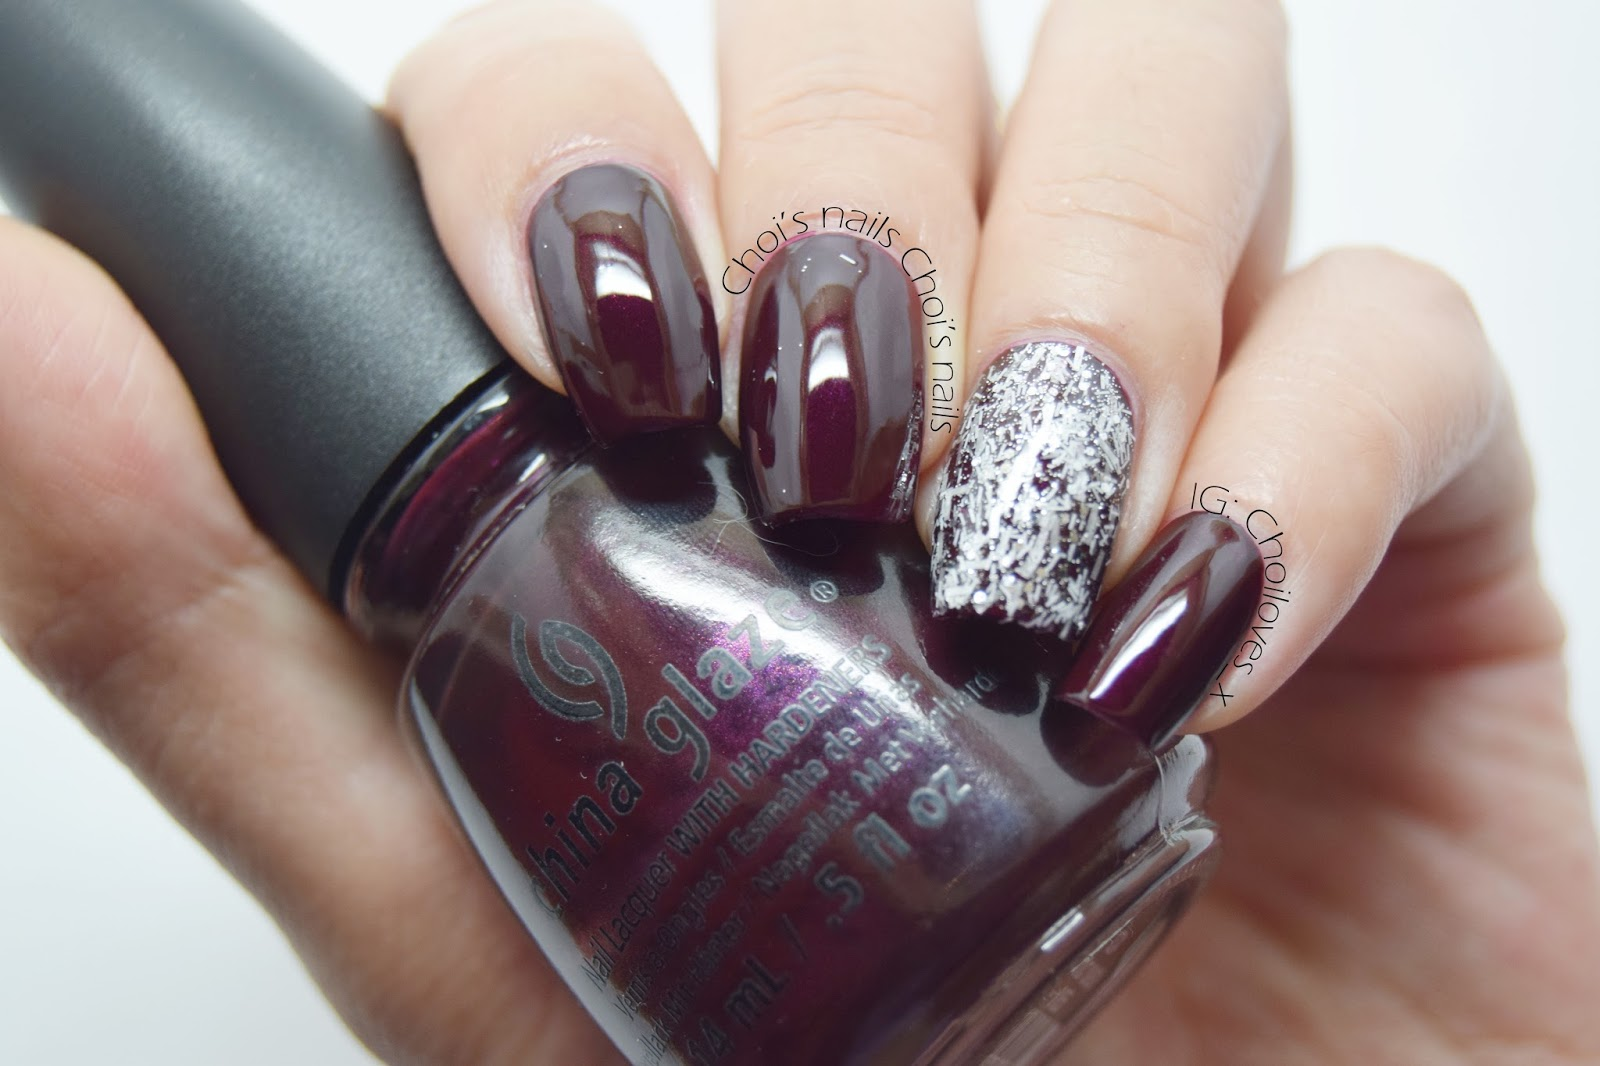 China Glaze Conduct yourself - Choi\'s nails